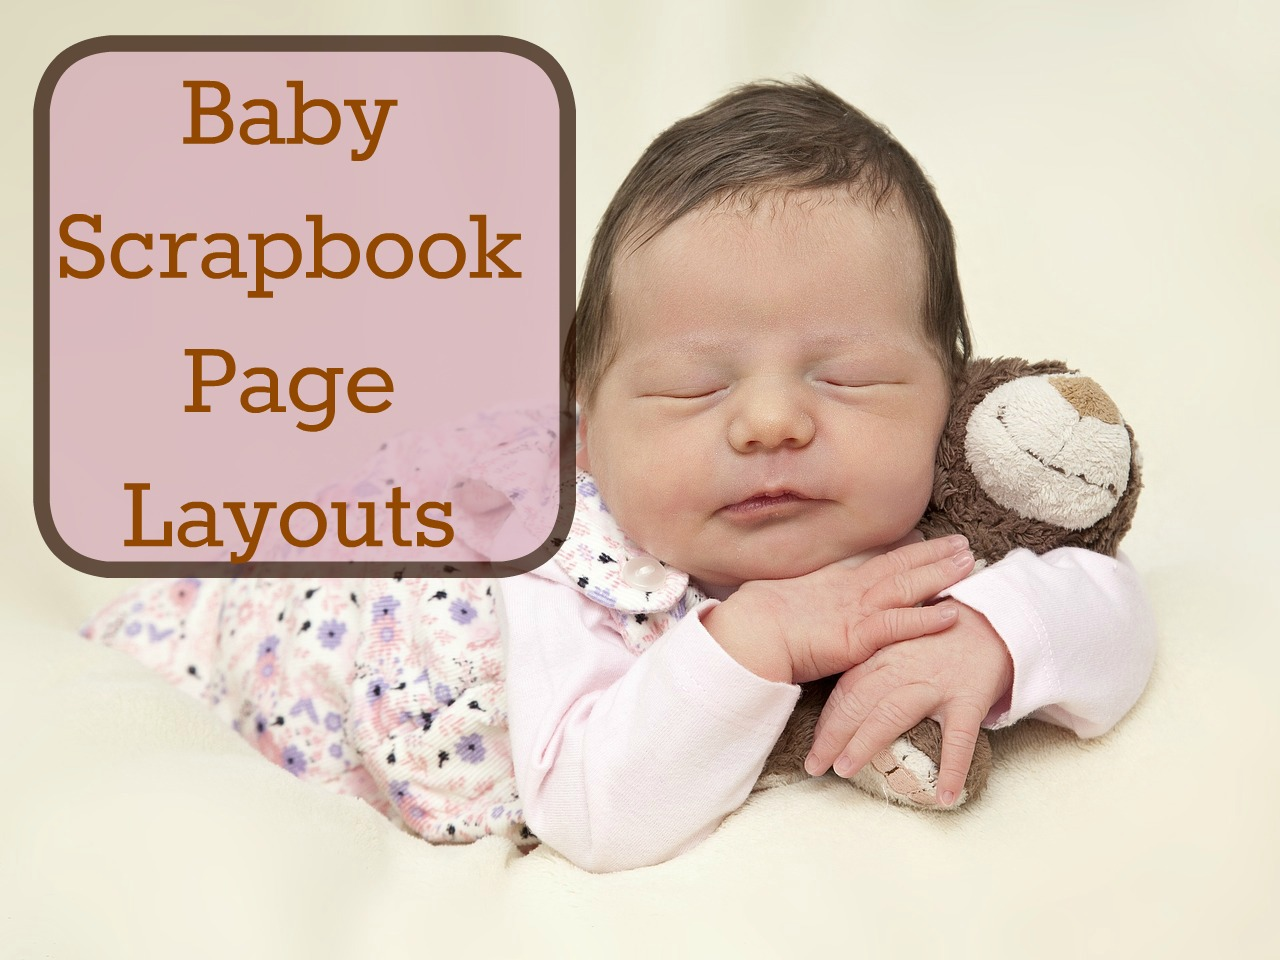 Journey scrapbook ideas - I Also Tend To Feel A Bit Nervous As I M Making Each Scrapbook I Always Have That Niggling Little Fear That The Recipients Of The Gift Wont Like It